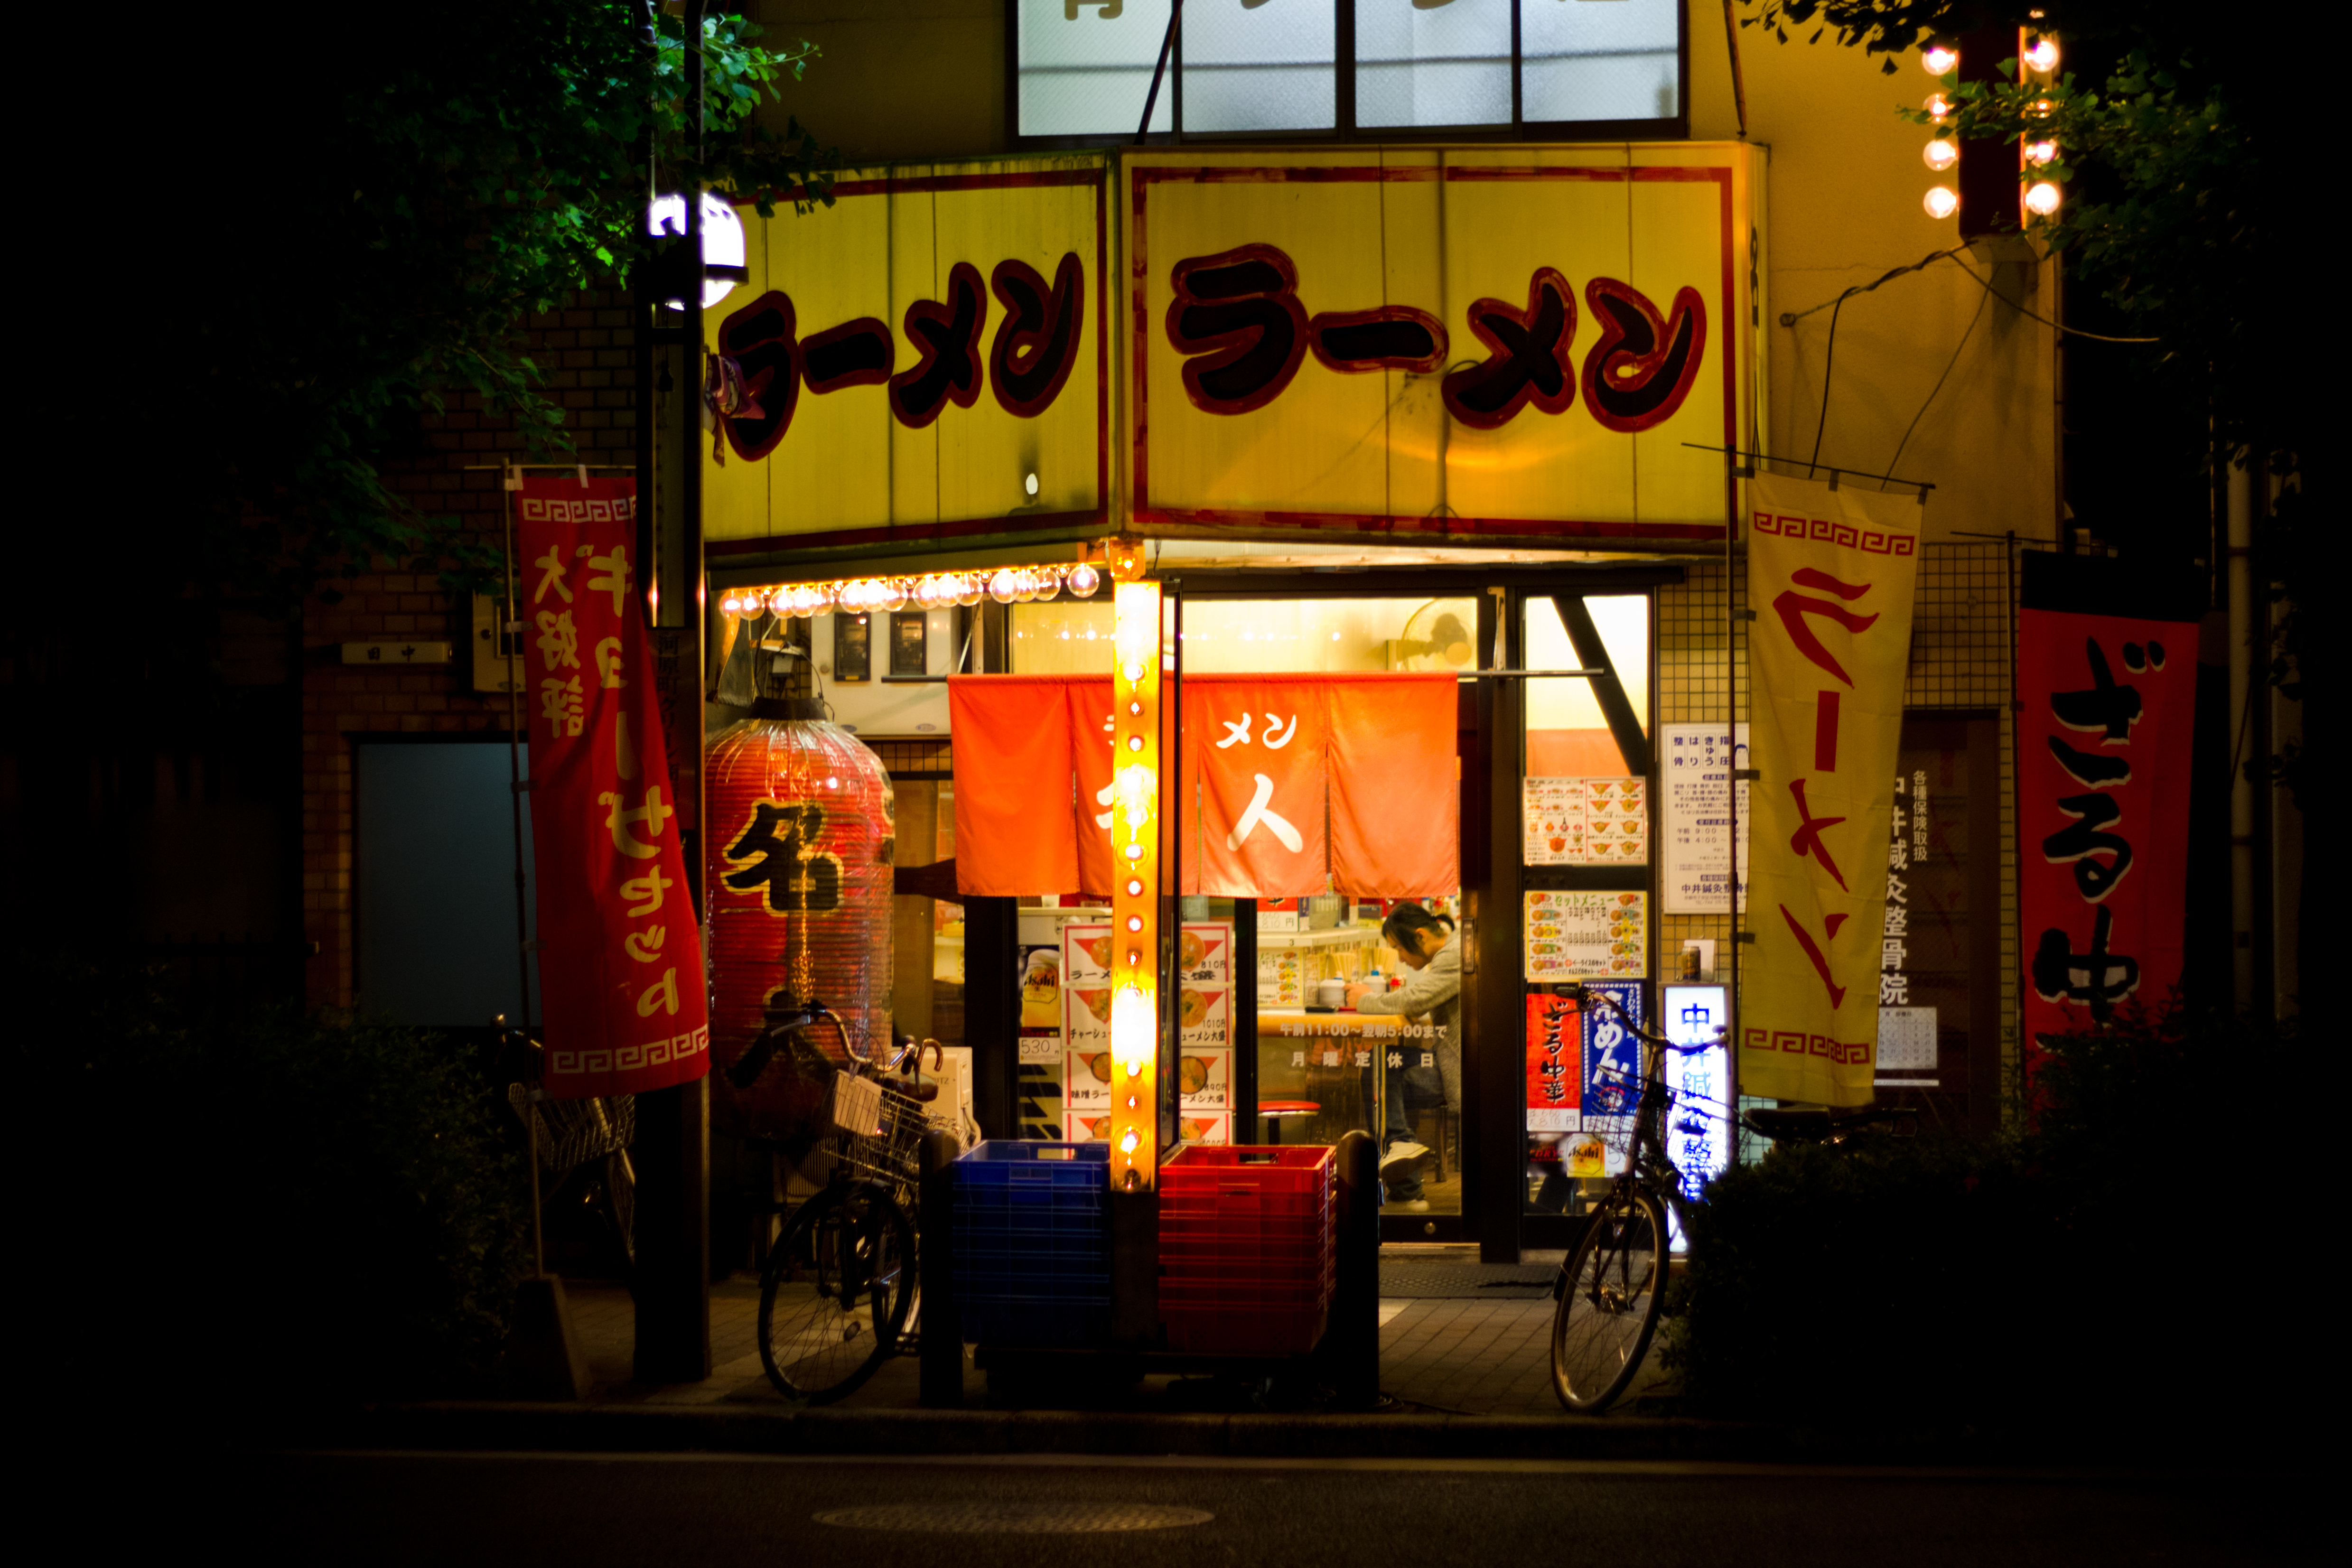 Asian Shop with Advertisements, Advertisements, Asian, Bicycle, Corner store, HQ Photo